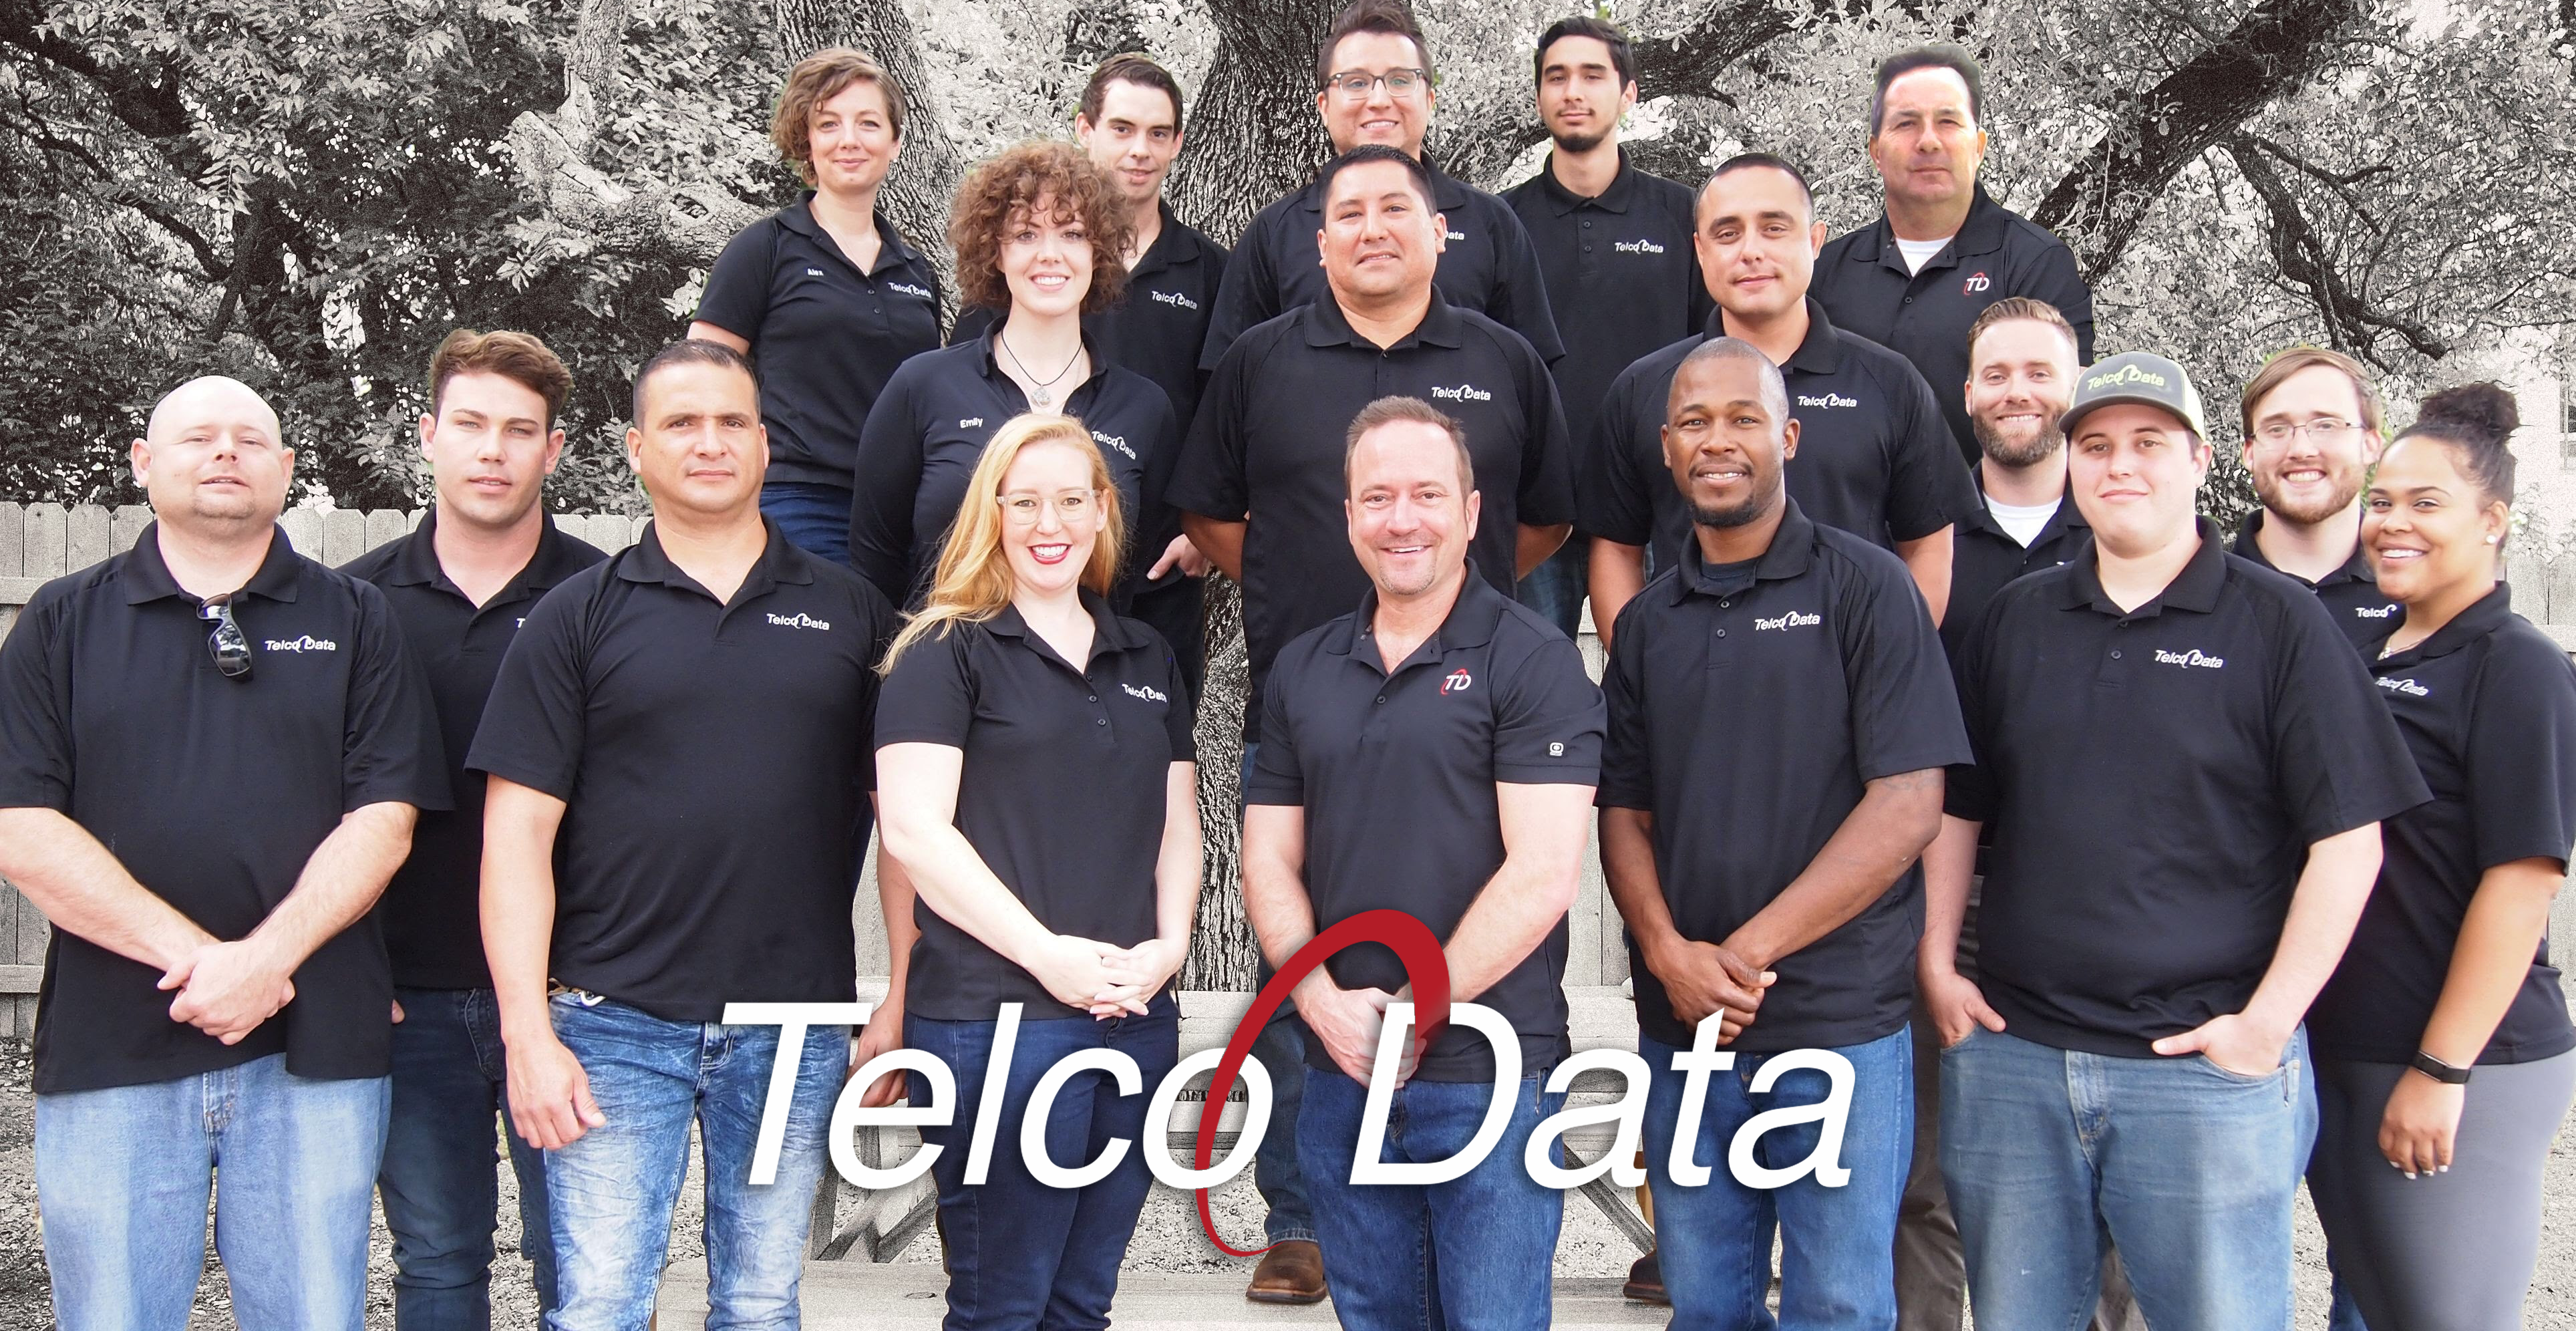 Telco Data Team Photo 2018